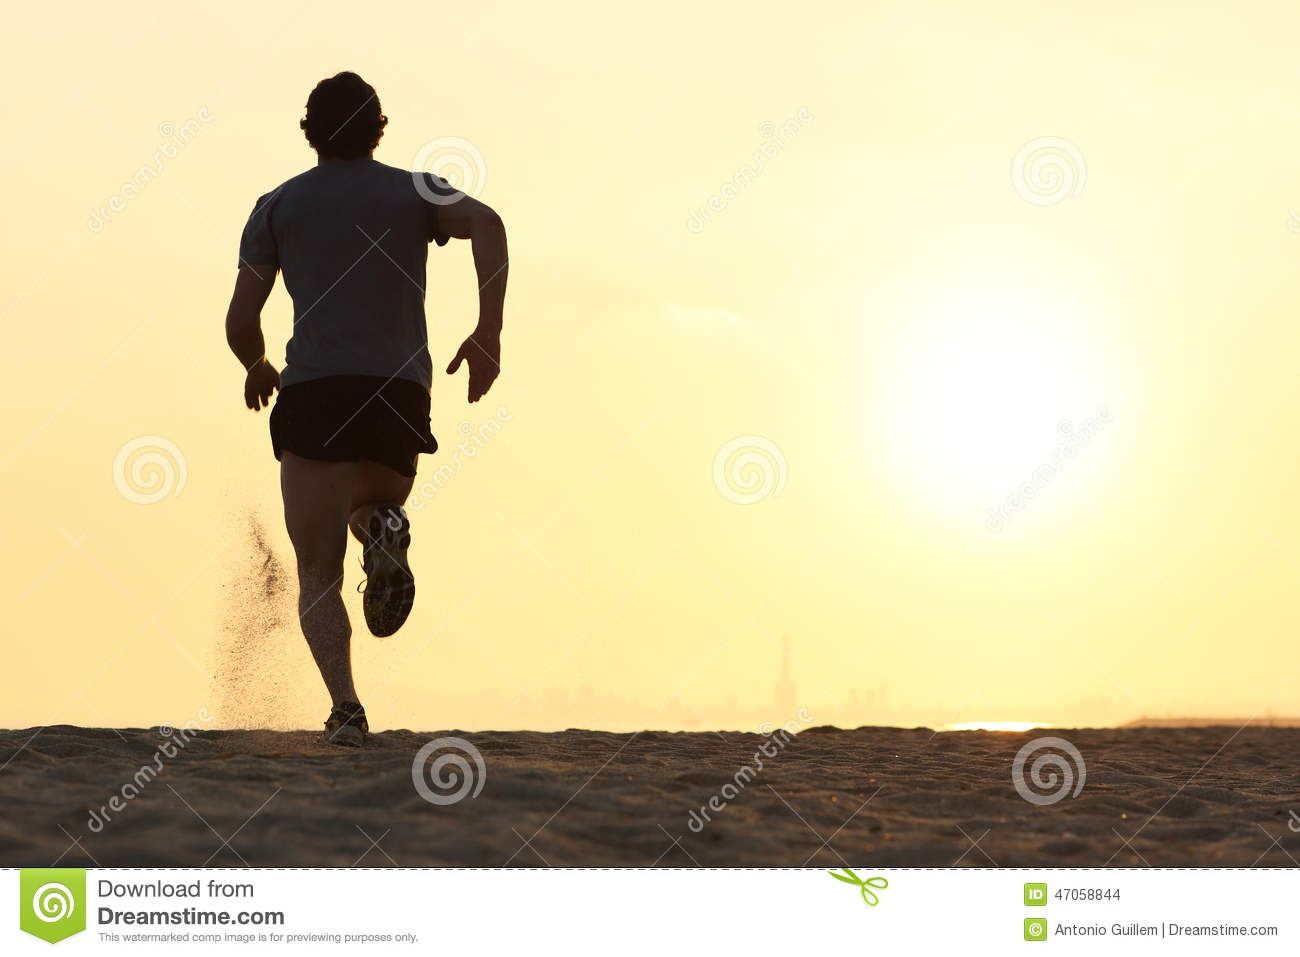 Back view silhouette of a runner man running on the beach